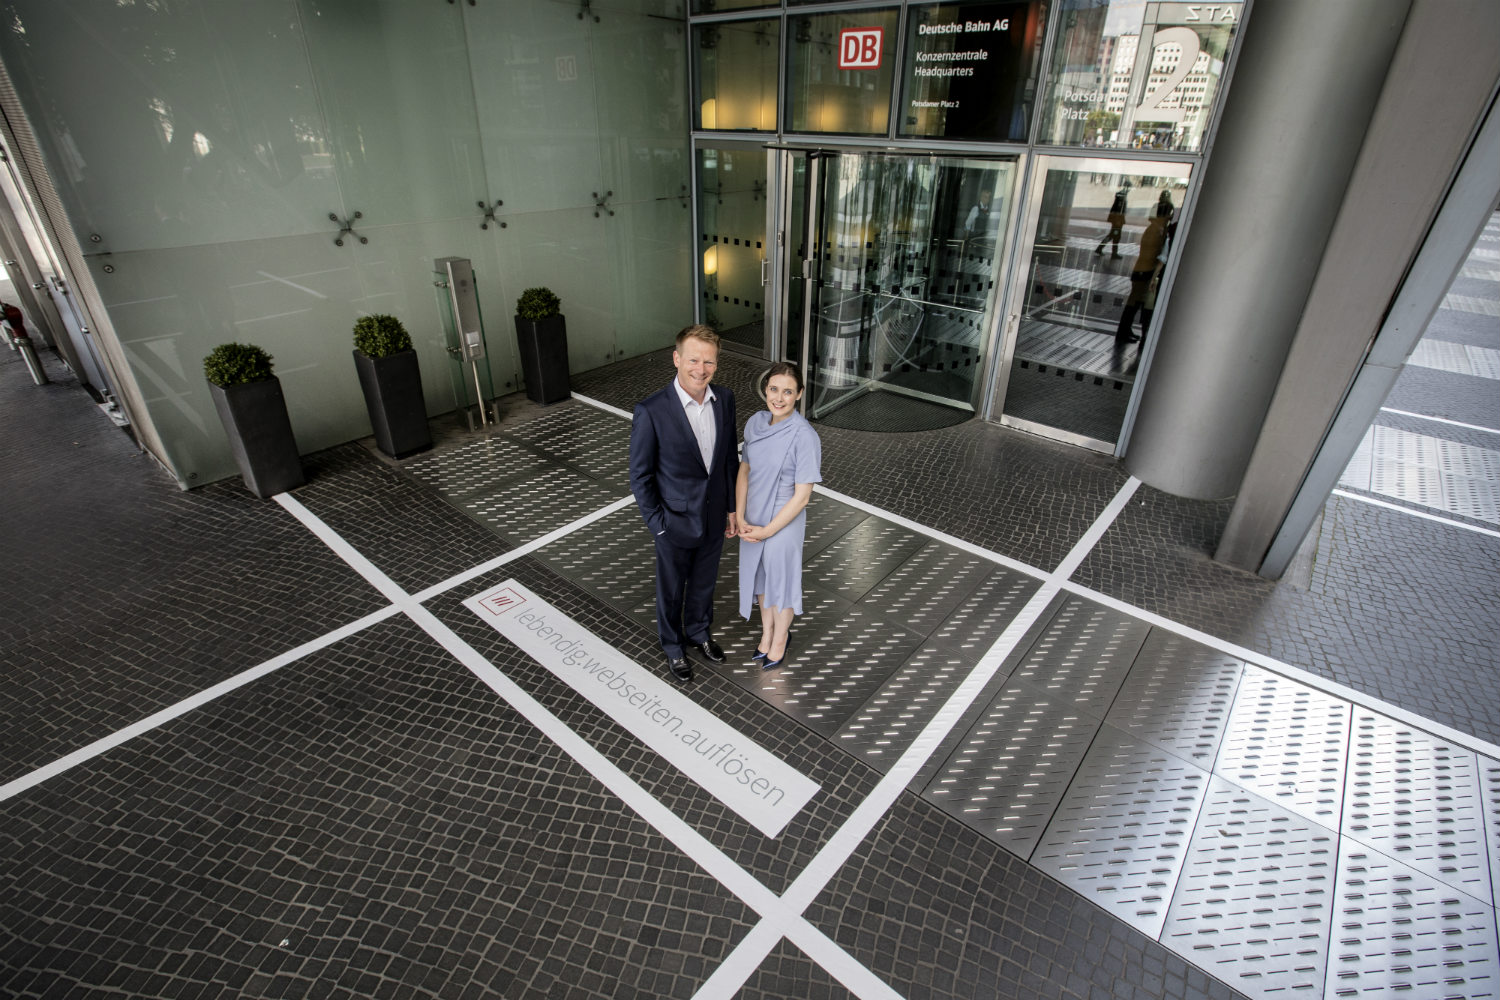 two people standing outside office building